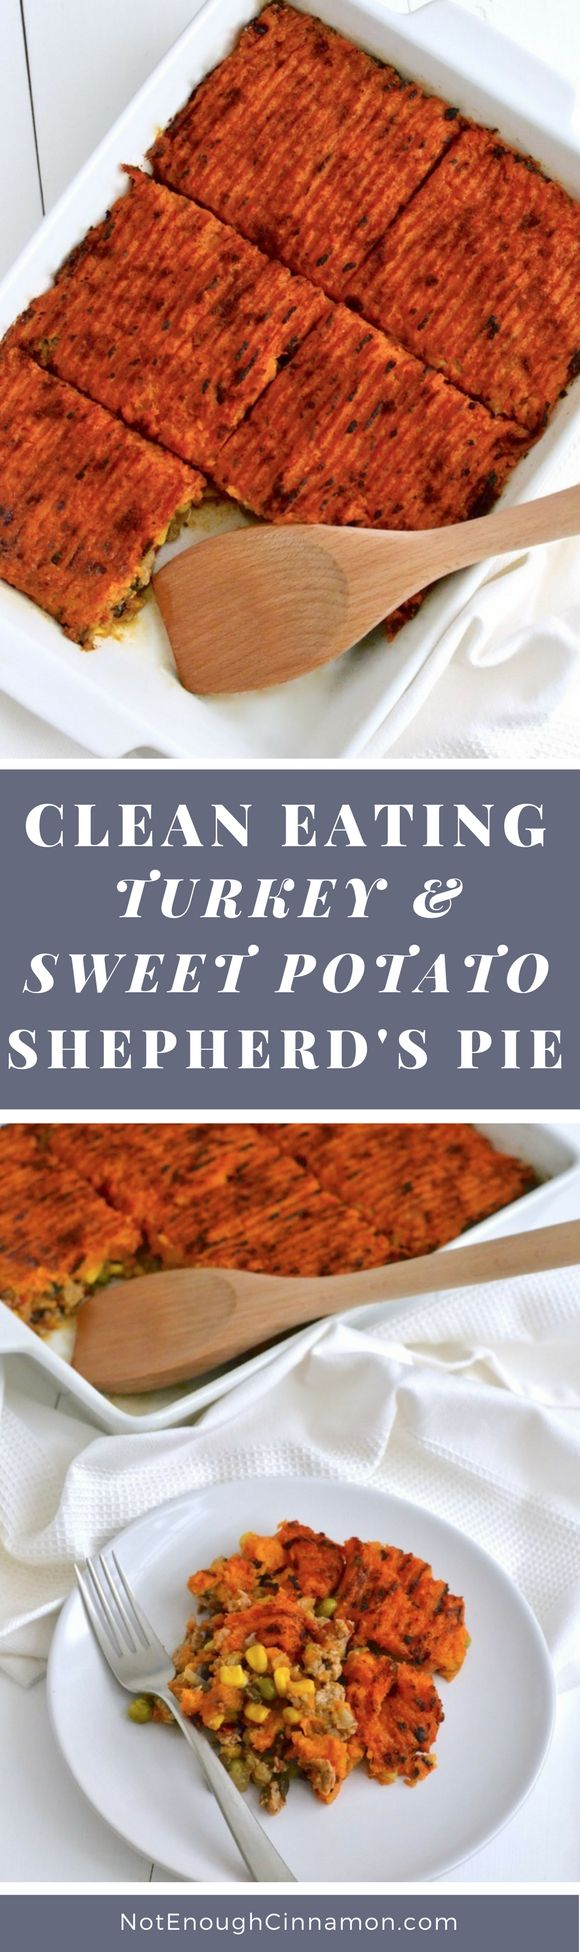 A delicious, healthy and comforting casserole made with ground turkey, veggies and top with a sweet potato mash. Naturally gluten